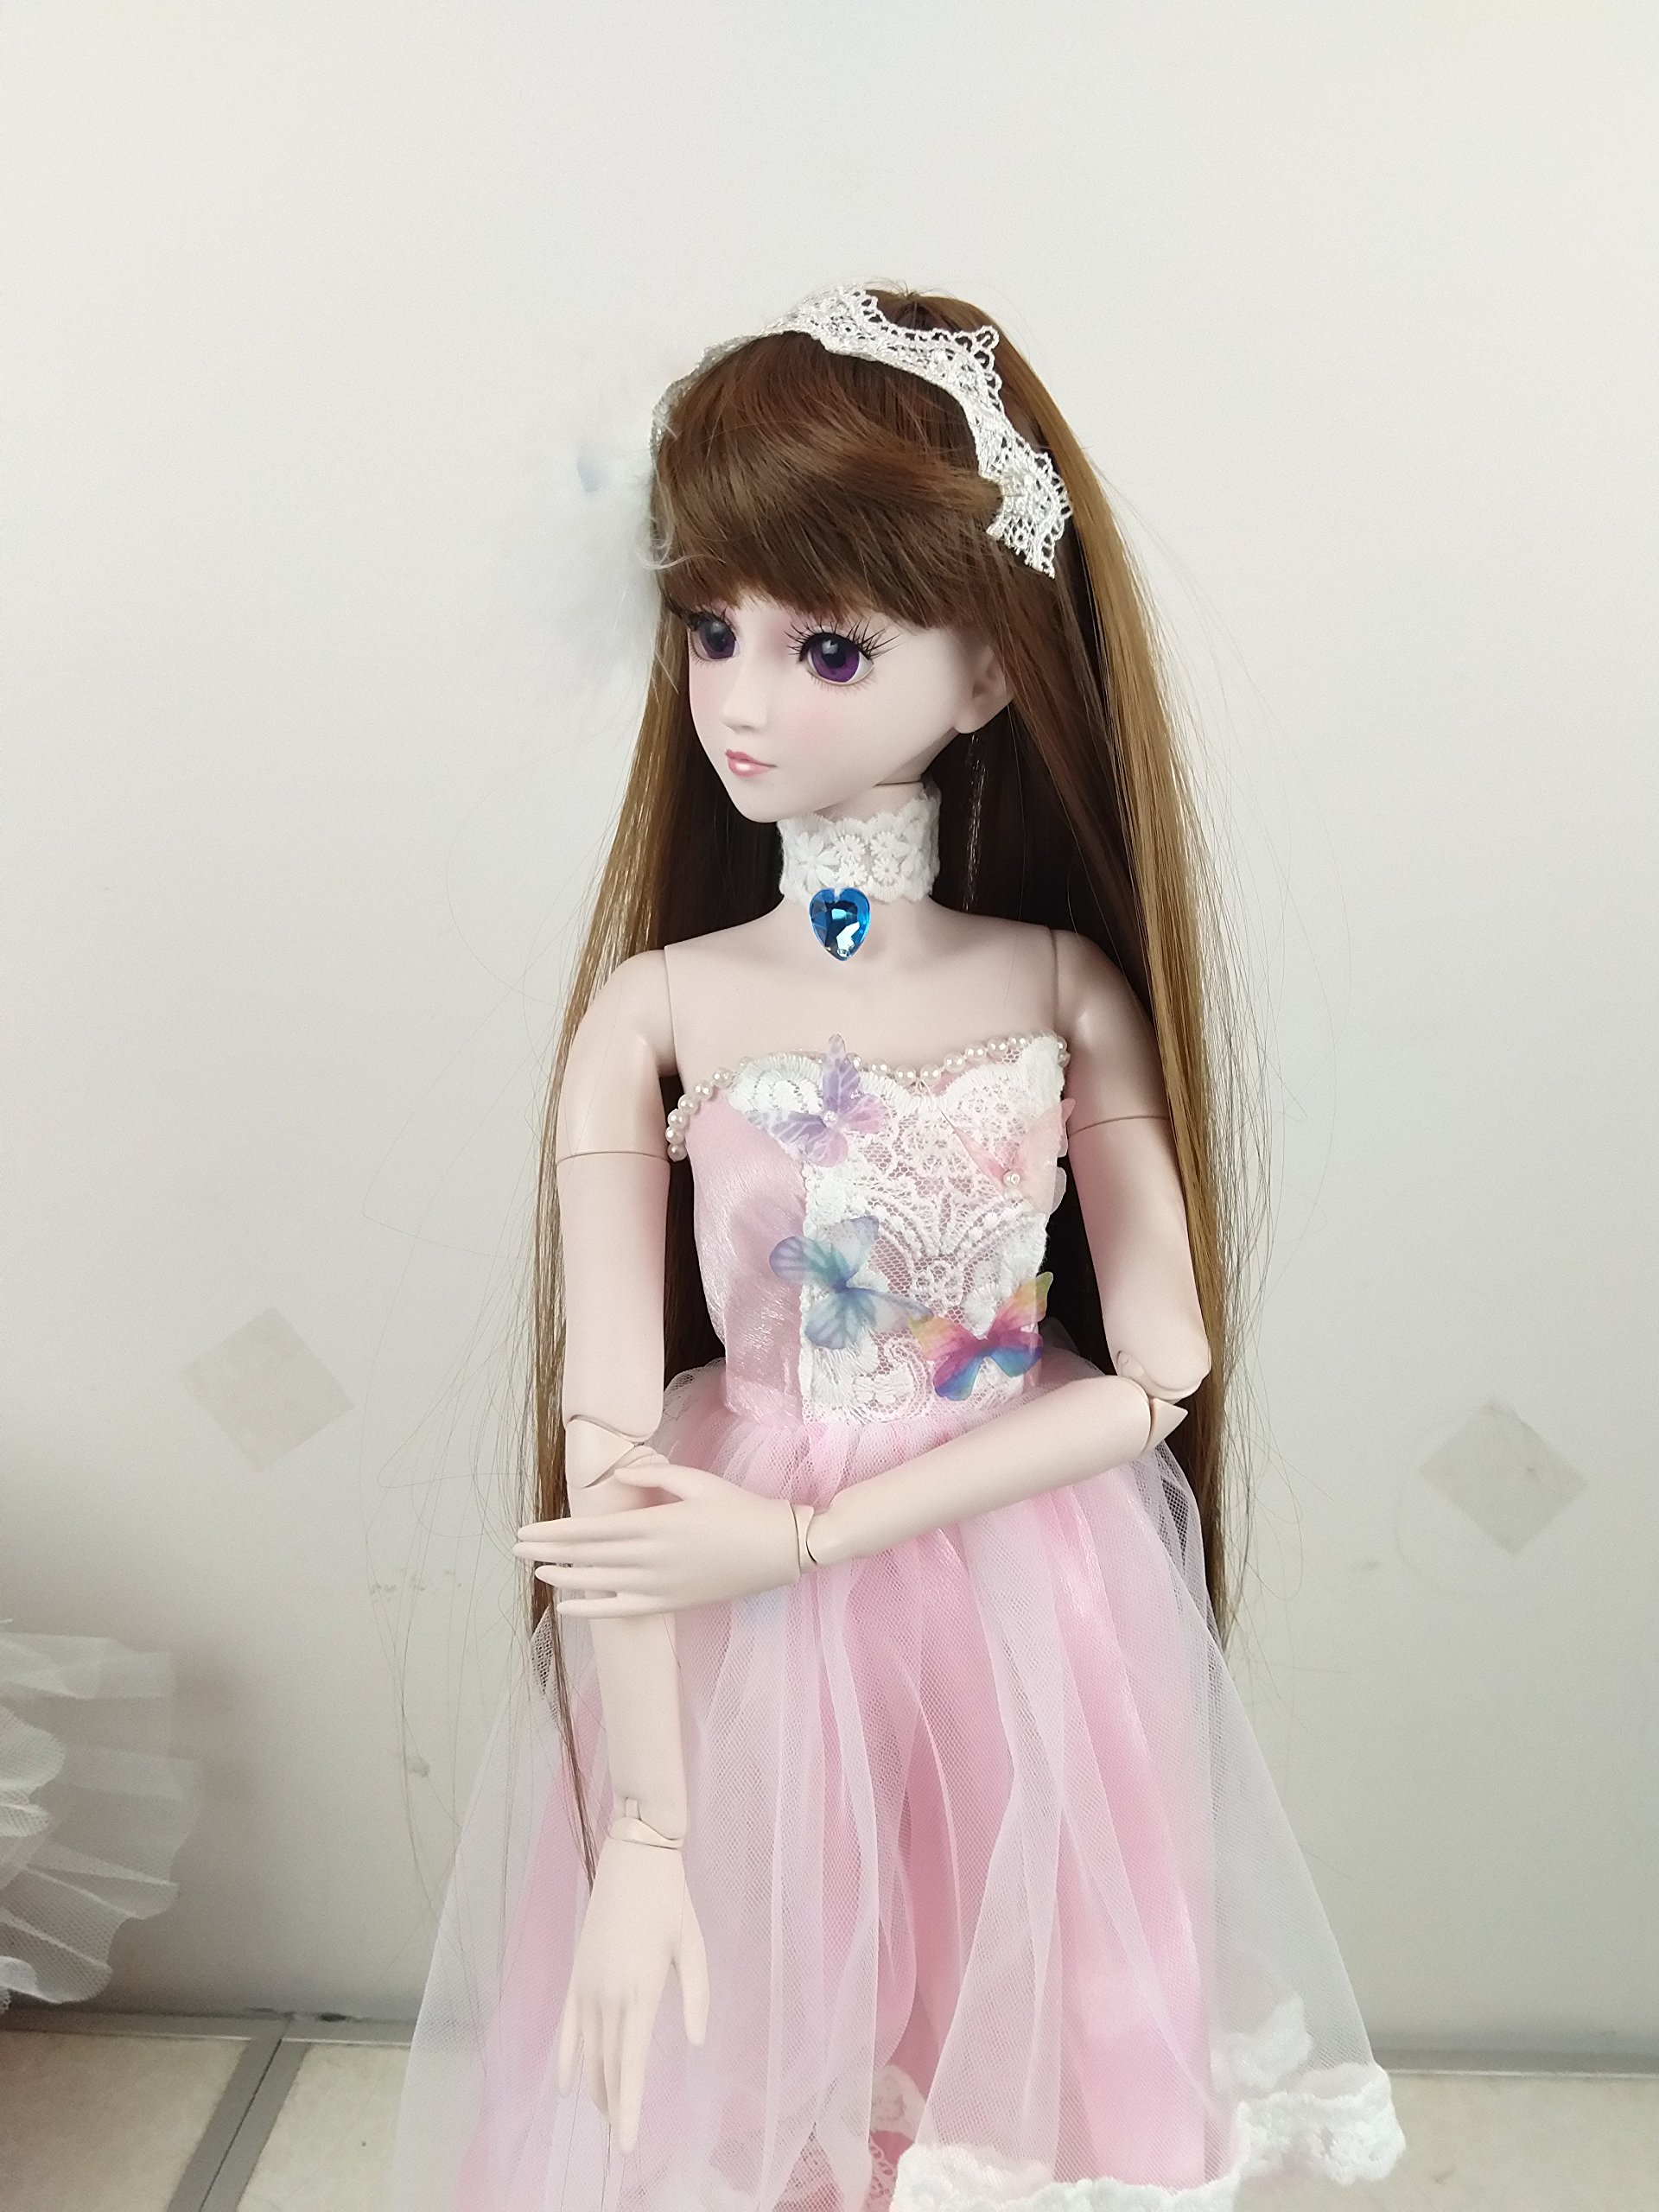 Pink Butterfly BJD Doll 1/3 Dolls 22inch 56cm 19 Joint Ball Jointed Dolls Toy Clothes + Doll + Accesssories Full Set by EVA BJD (Image #5)